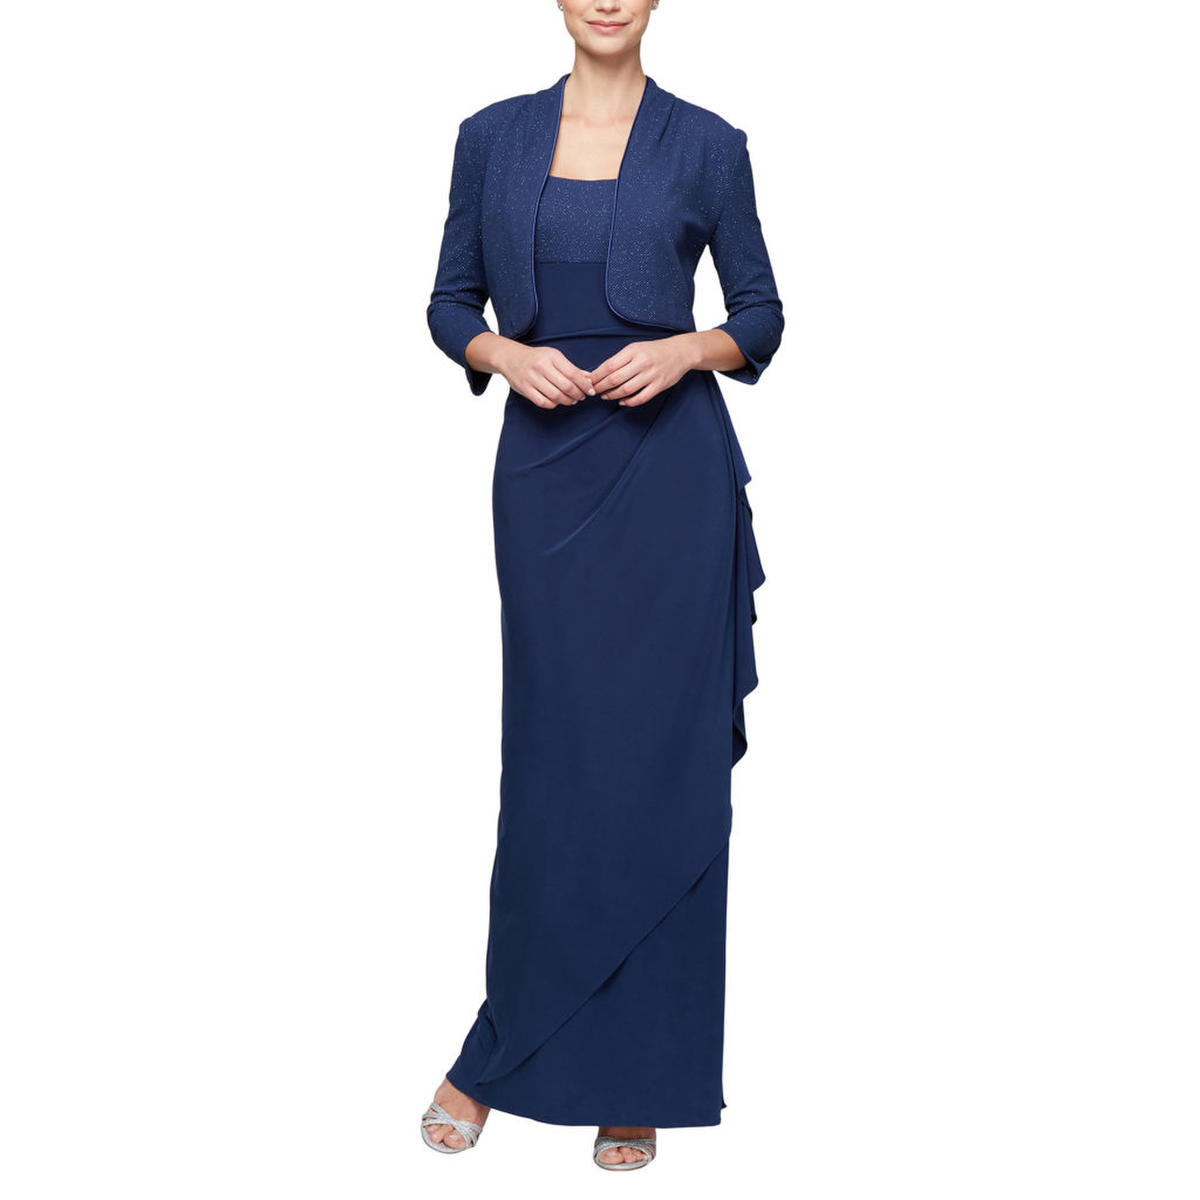 ALEX APPAREL GROUP INC - Glitter Embellished Wrap Gown with Jacket